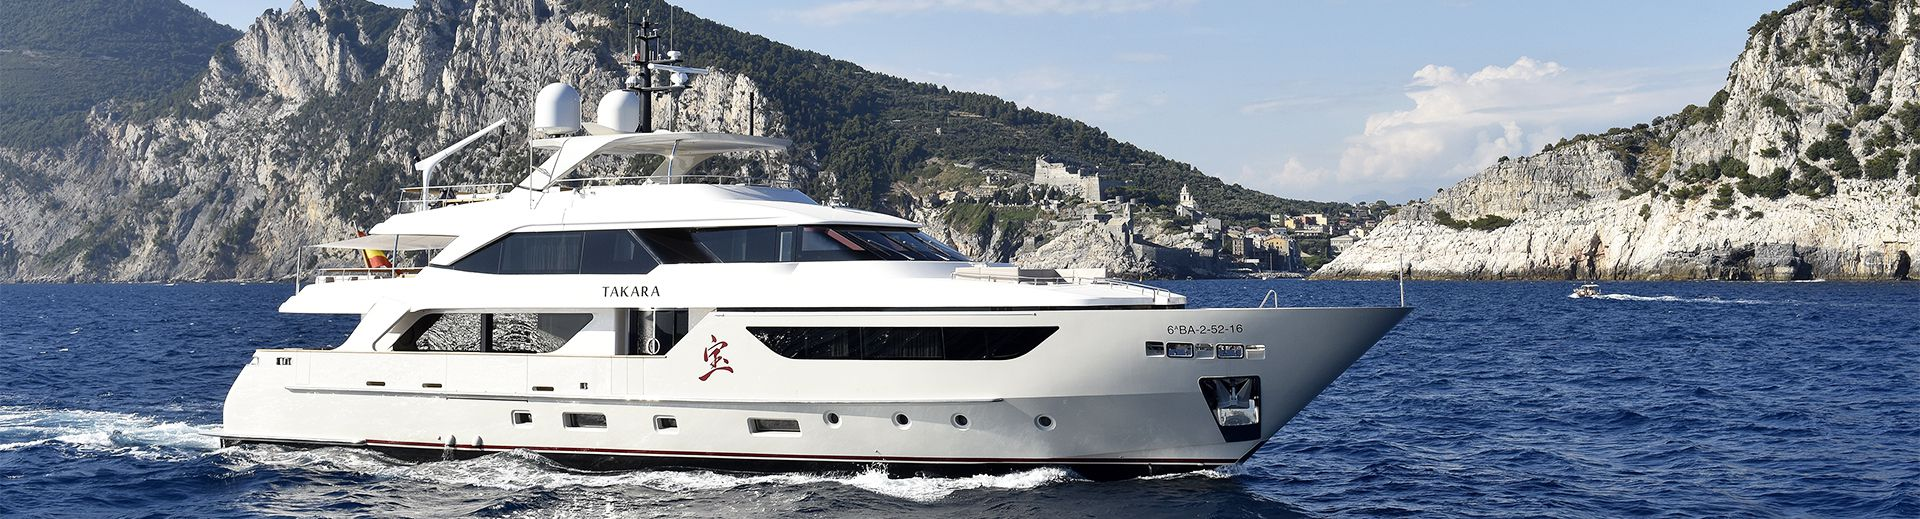 Boat rentals & Yacht Charters   Charter & Dreams